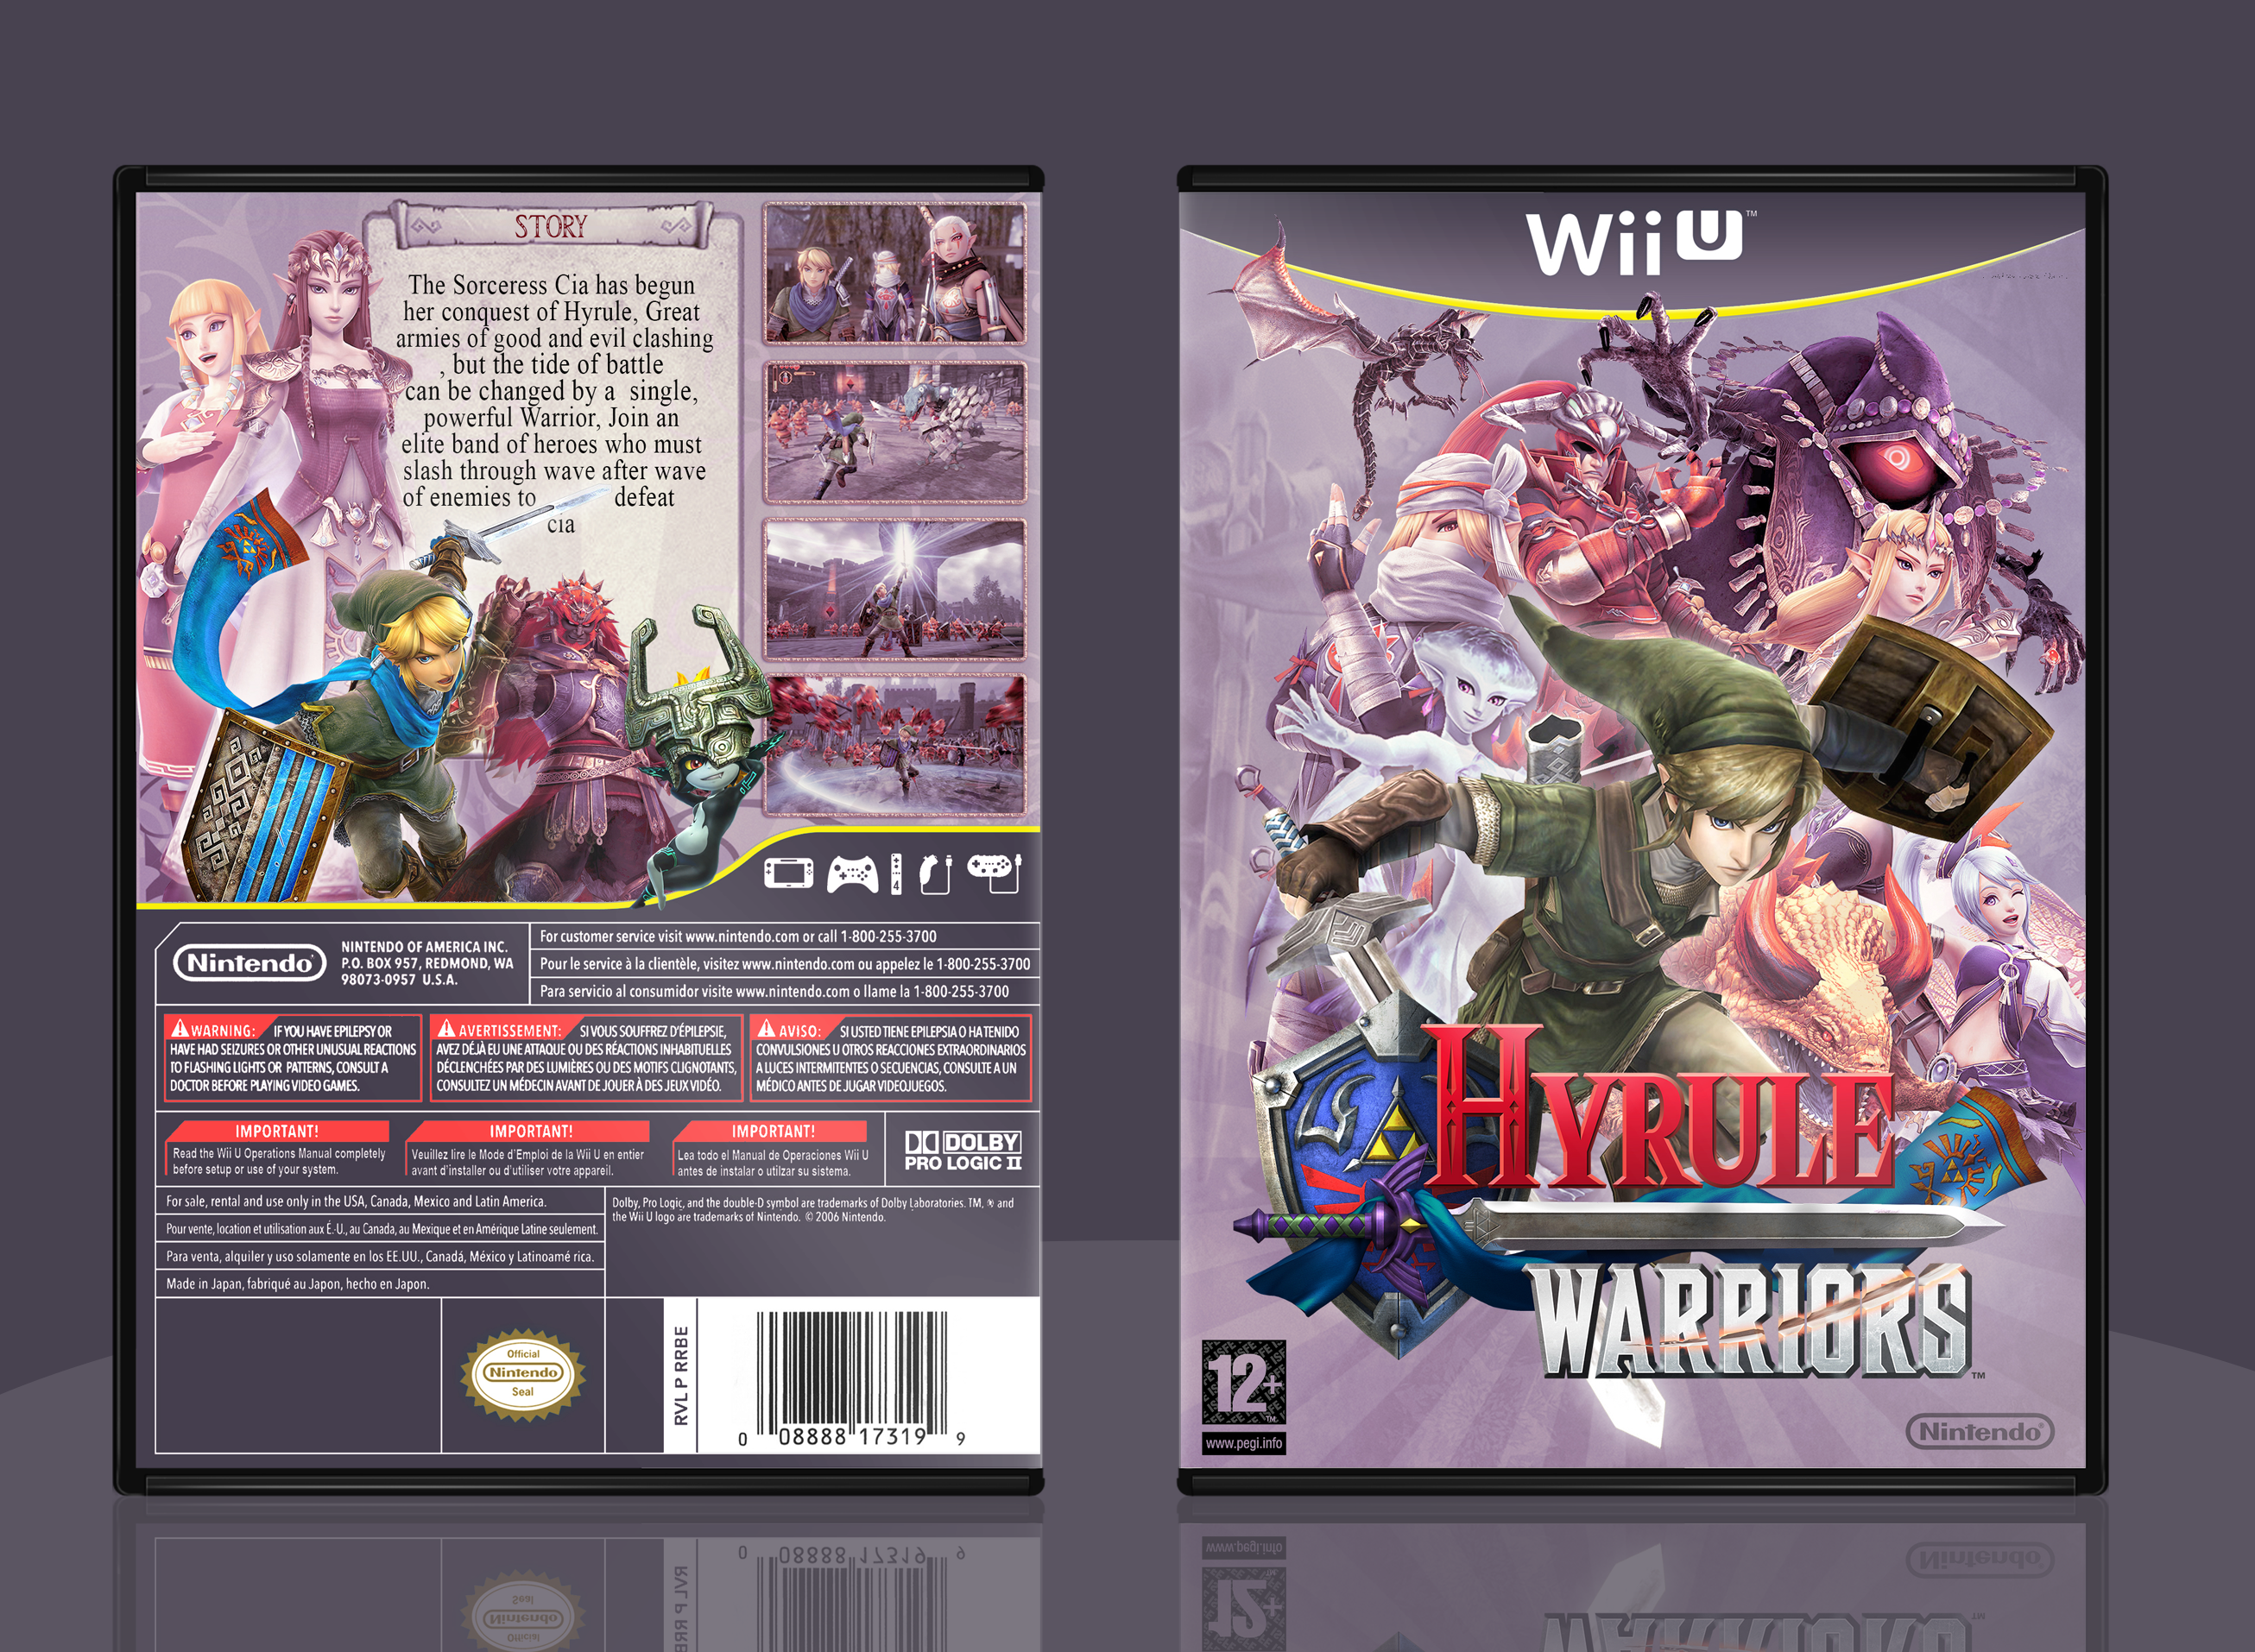 Hyrule Warriors box cover